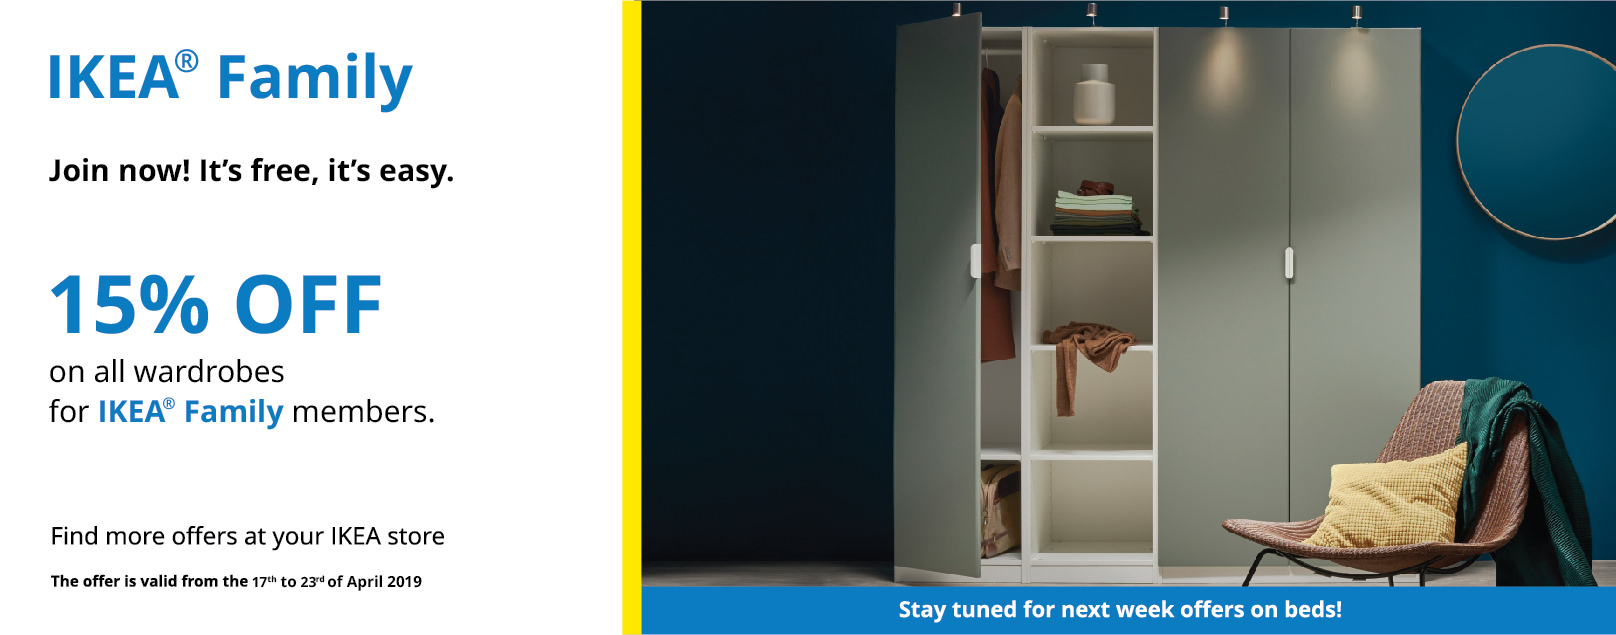 15% off on wardrobes. Only for IKEA Family members